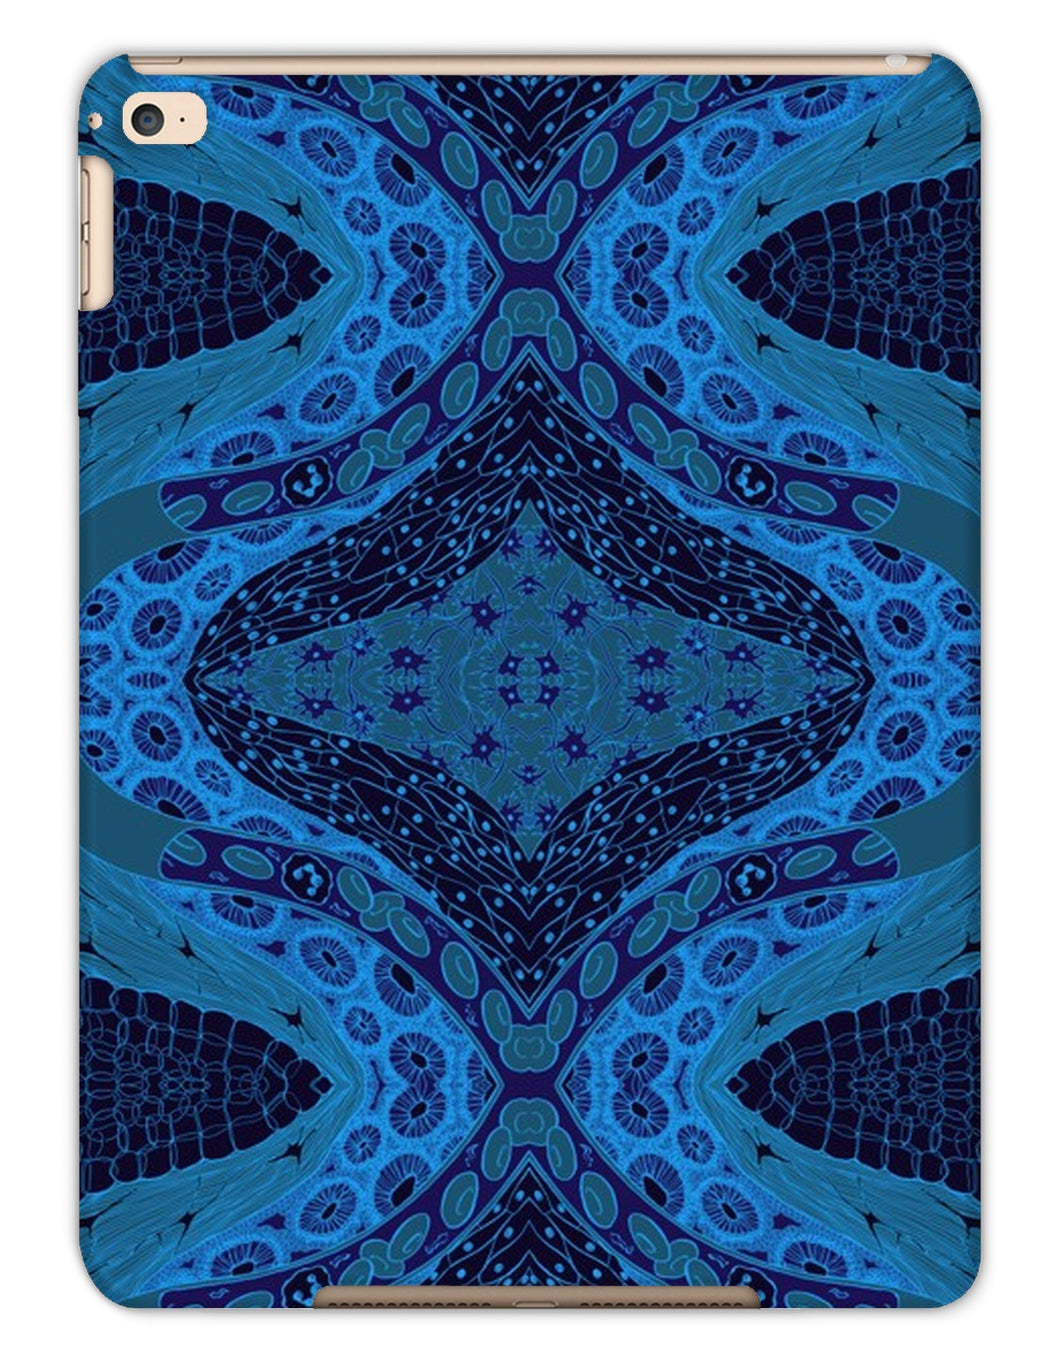 Blue Tissues Tablet Cases - Boutique Science